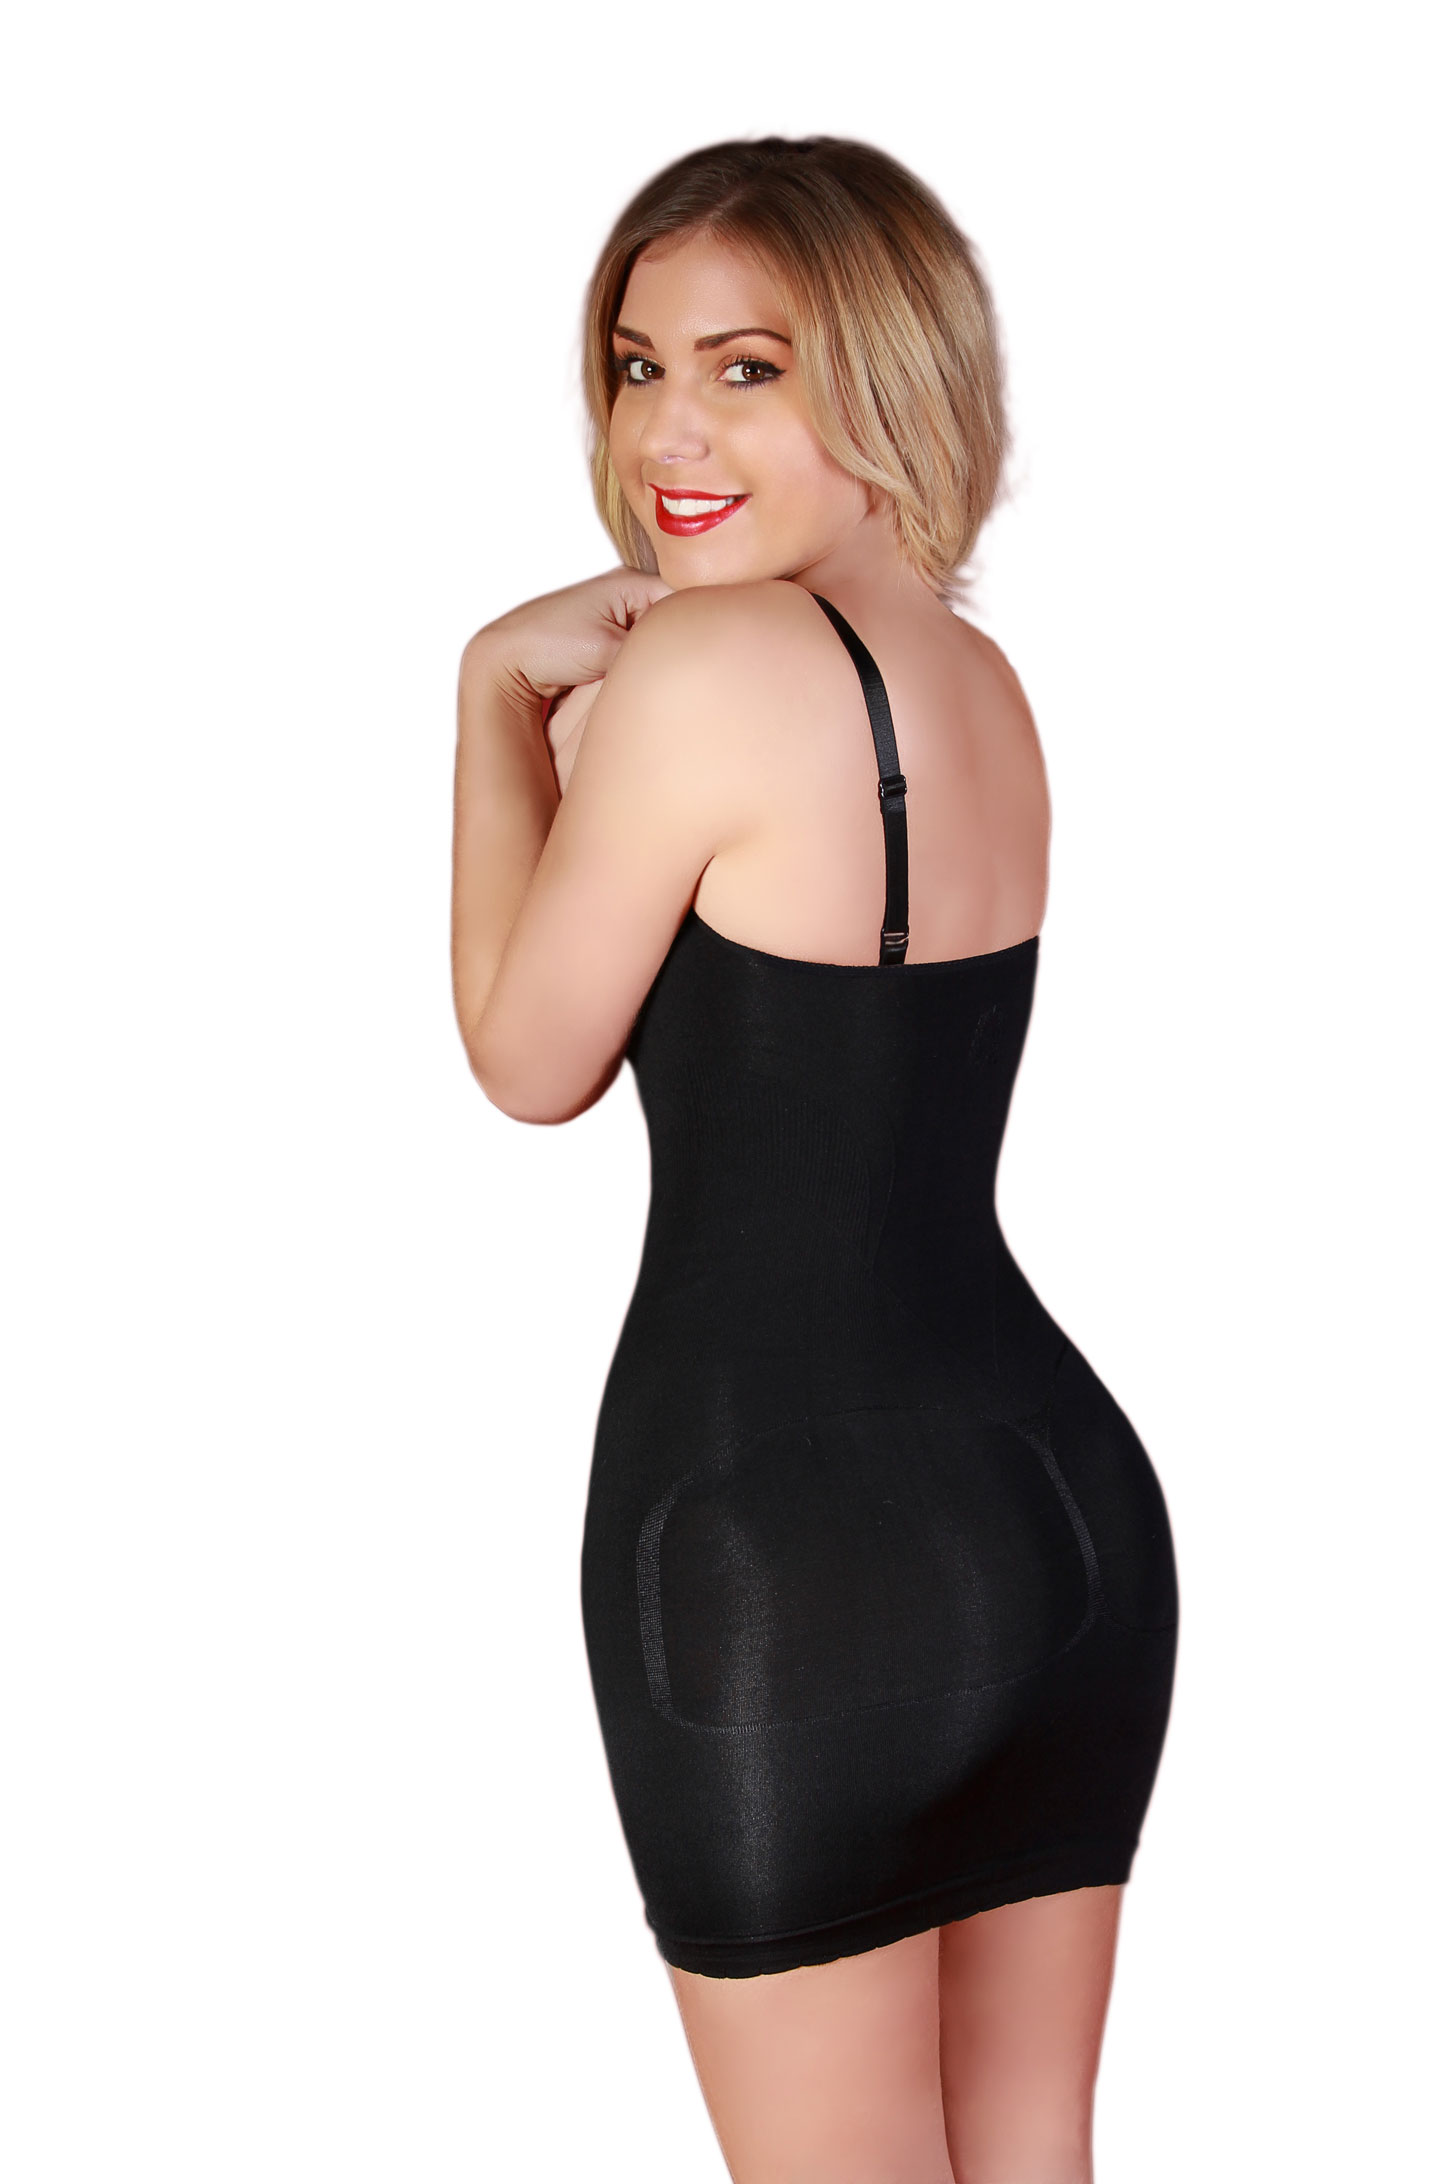 78ec359c303b Trending New Intimate Slip Dress Body Fitted Shapewear Lingerie Sexy  Slimming Bodycon on Storenvy